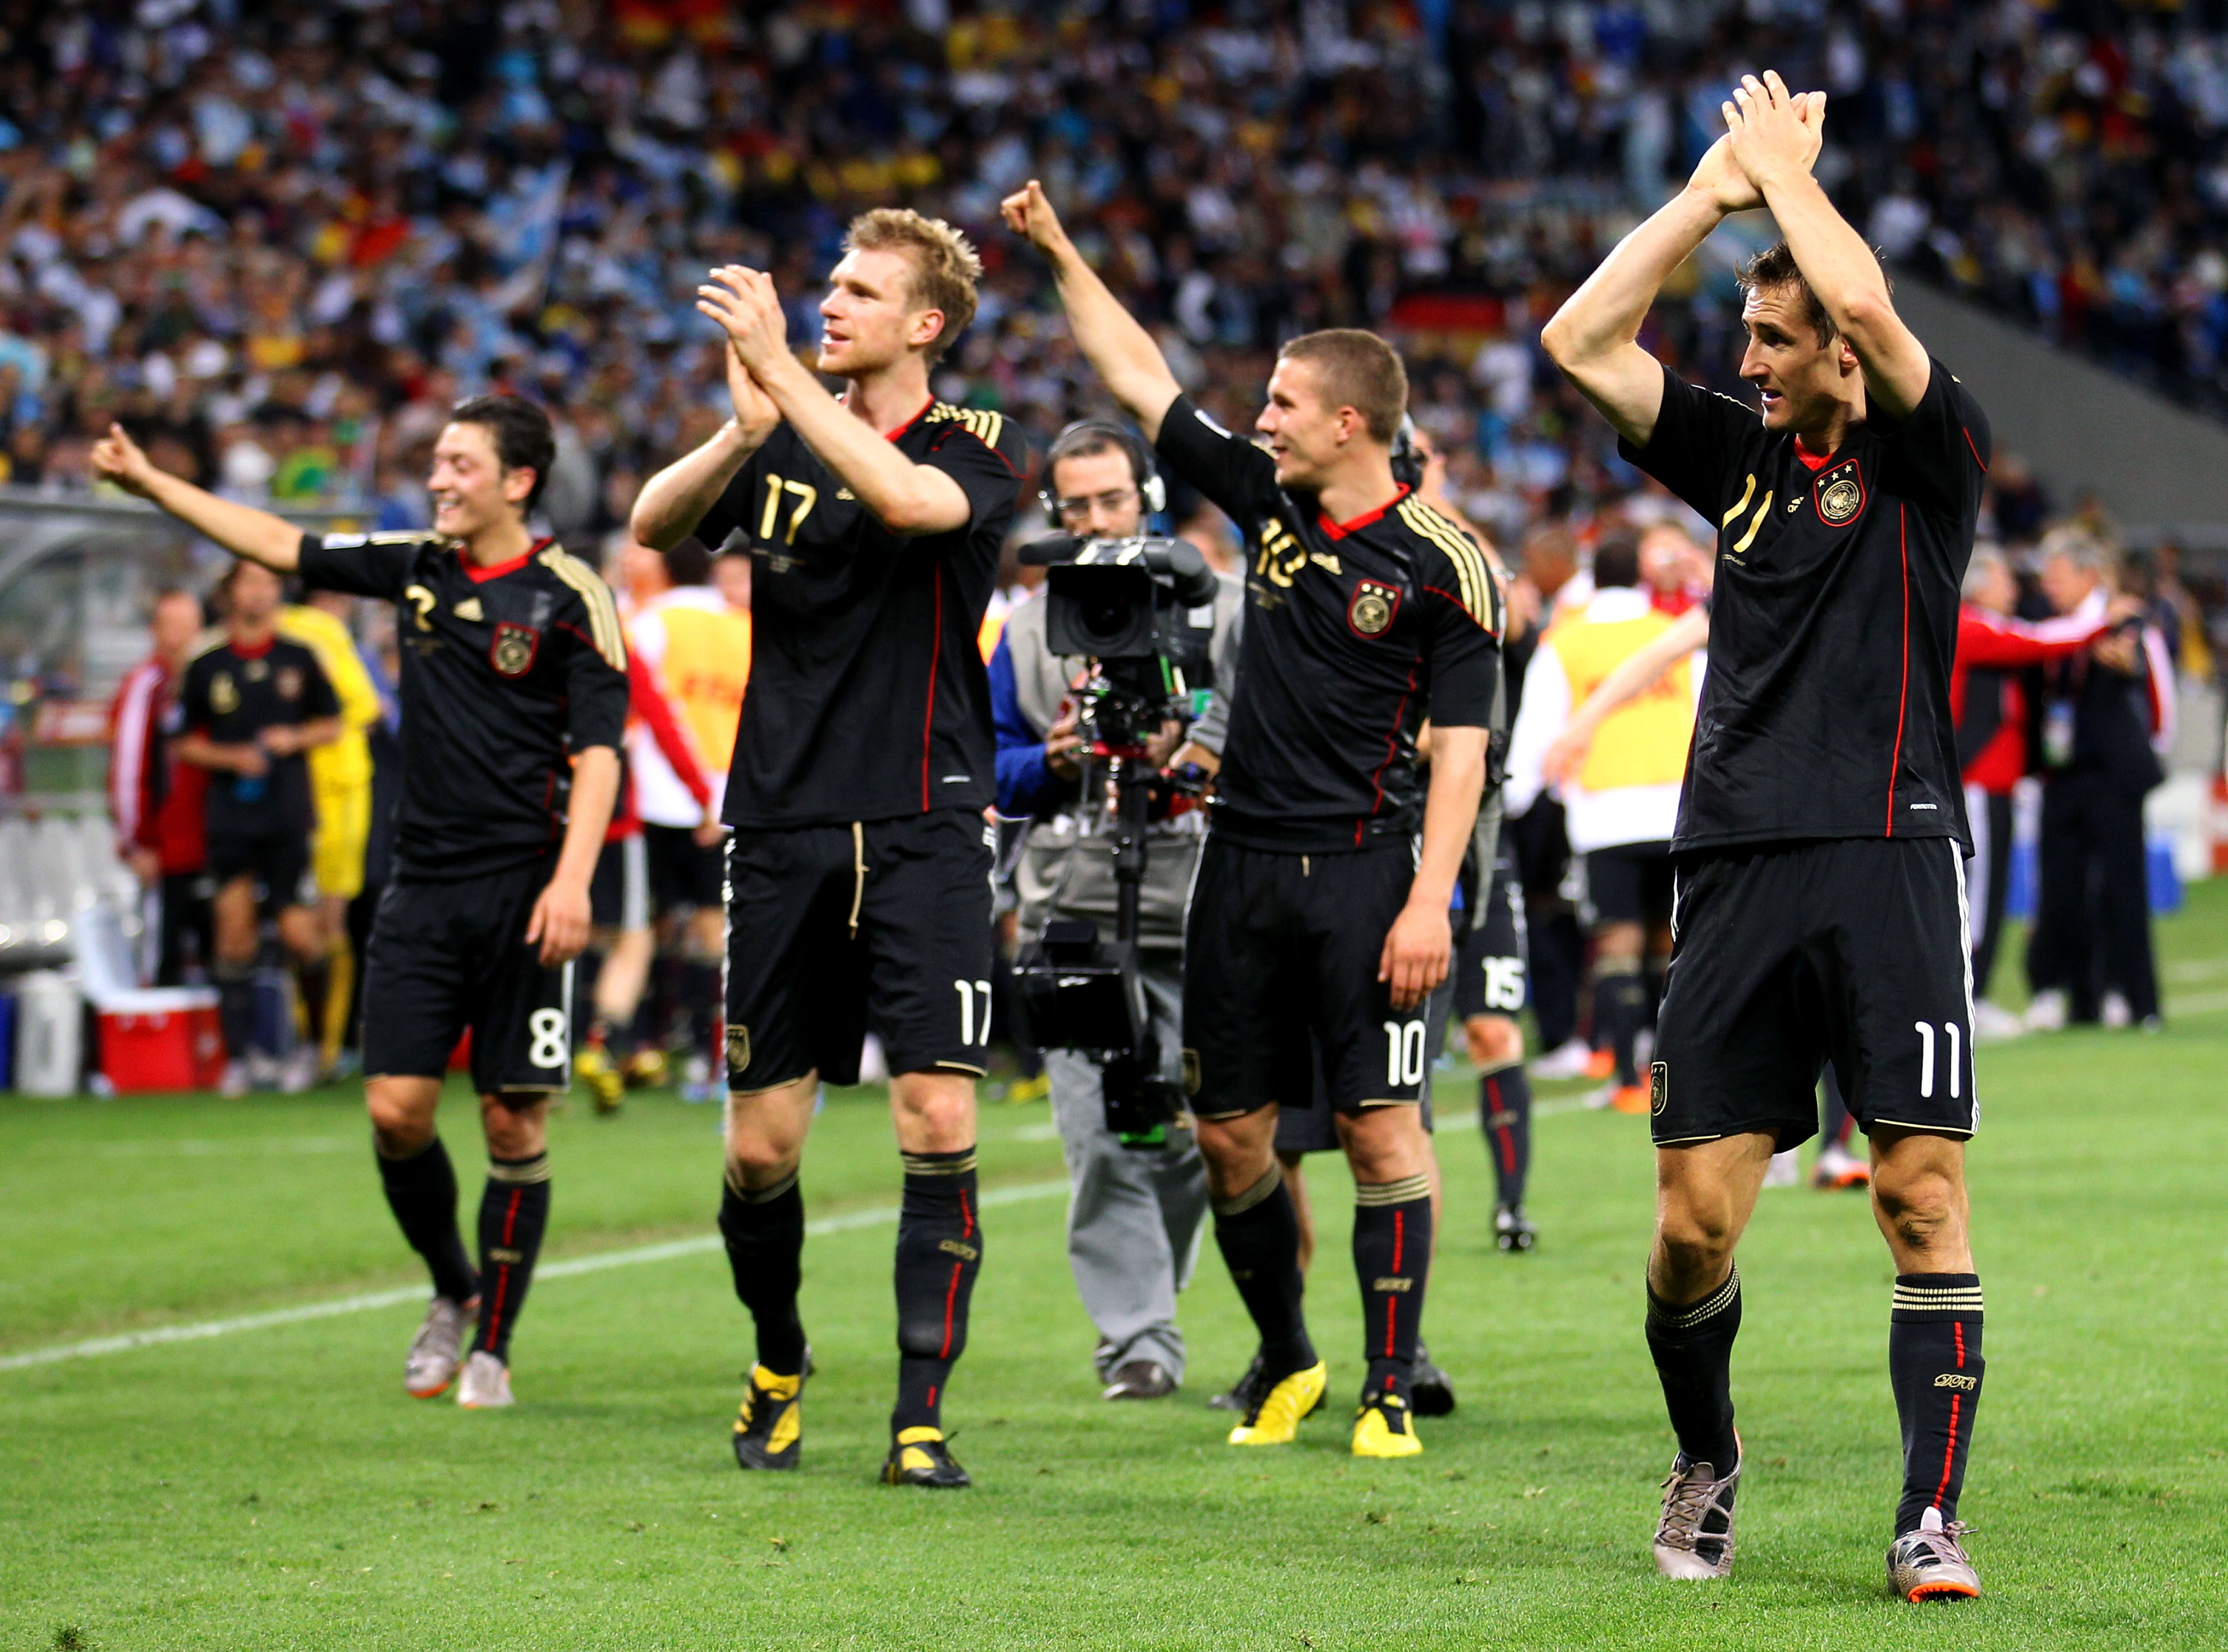 CAPE TOWN, SOUTH AFRICA - JULY 03:  Miroslav Klose (R) of Germany celebrates victory with team mates during the 2010 FIFA World Cup South Africa Quarter Final match between Argentina and Germany at Green Point Stadium on July 3, 2010 in Cape Town, South A